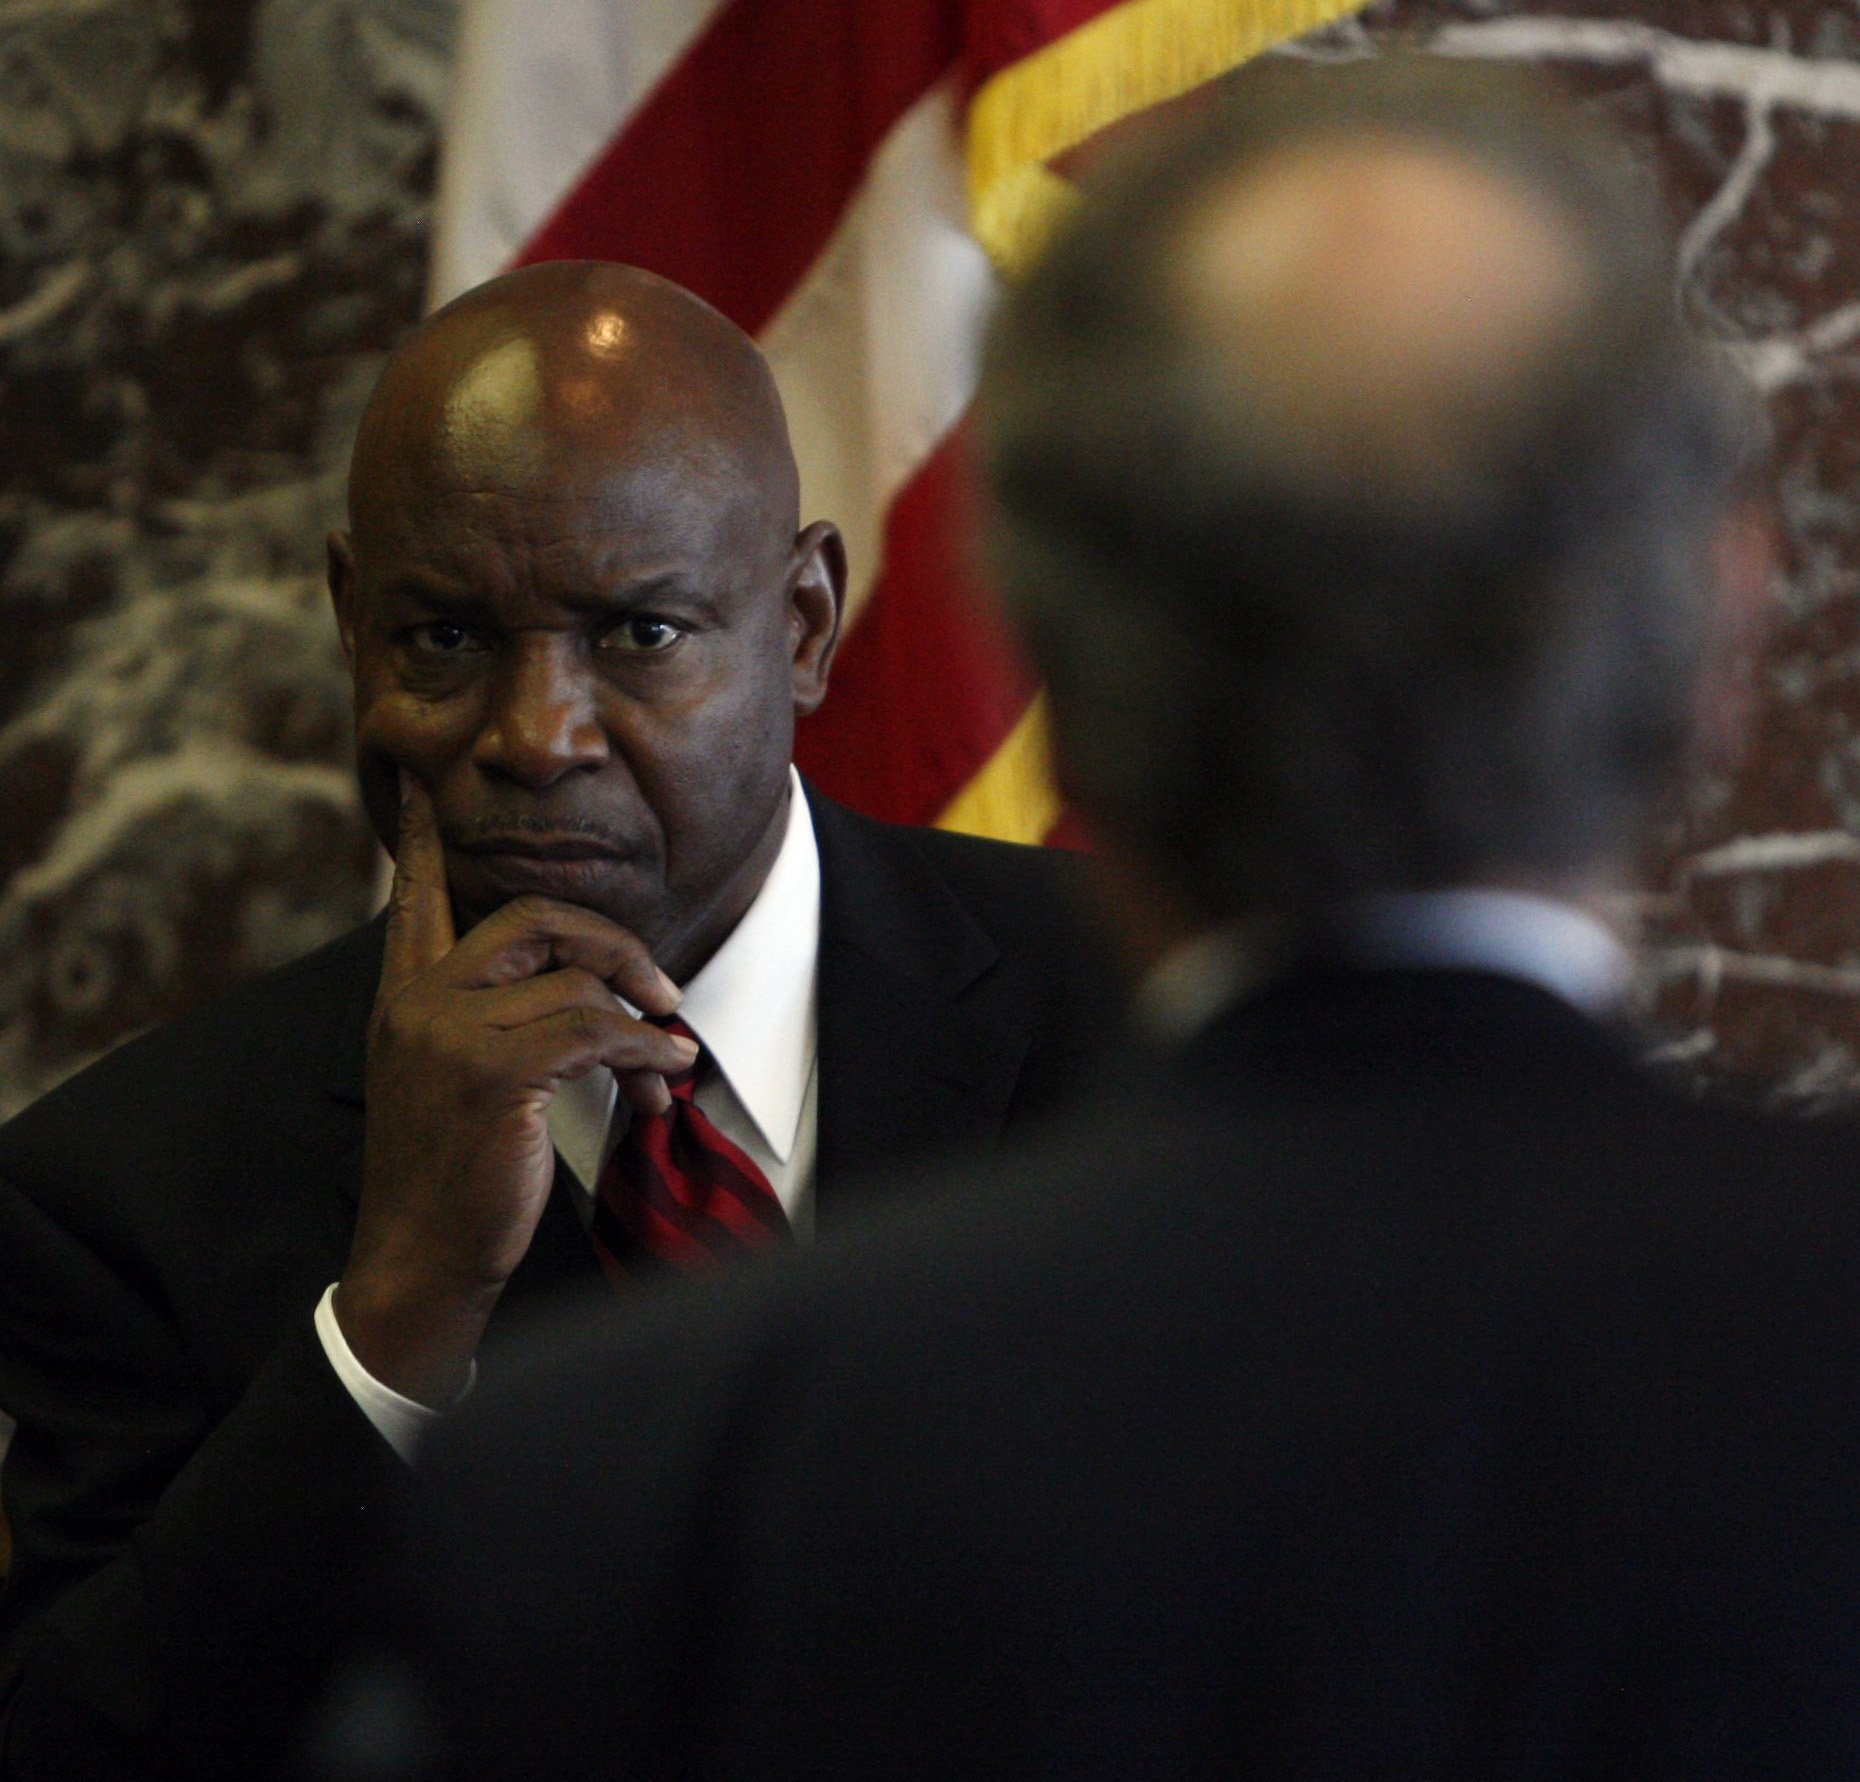 Former police chief Jerry Oliver testifies in the whistleblower case against the city and mayor. Oliver initially did not agree with the mayor's decision to remove Gary Brown as head of Internal Affairs. Oliver says that when he asked for a reason for the demotion, the mayor declined to tell him.  Courtesy of the Detroit Free Press.